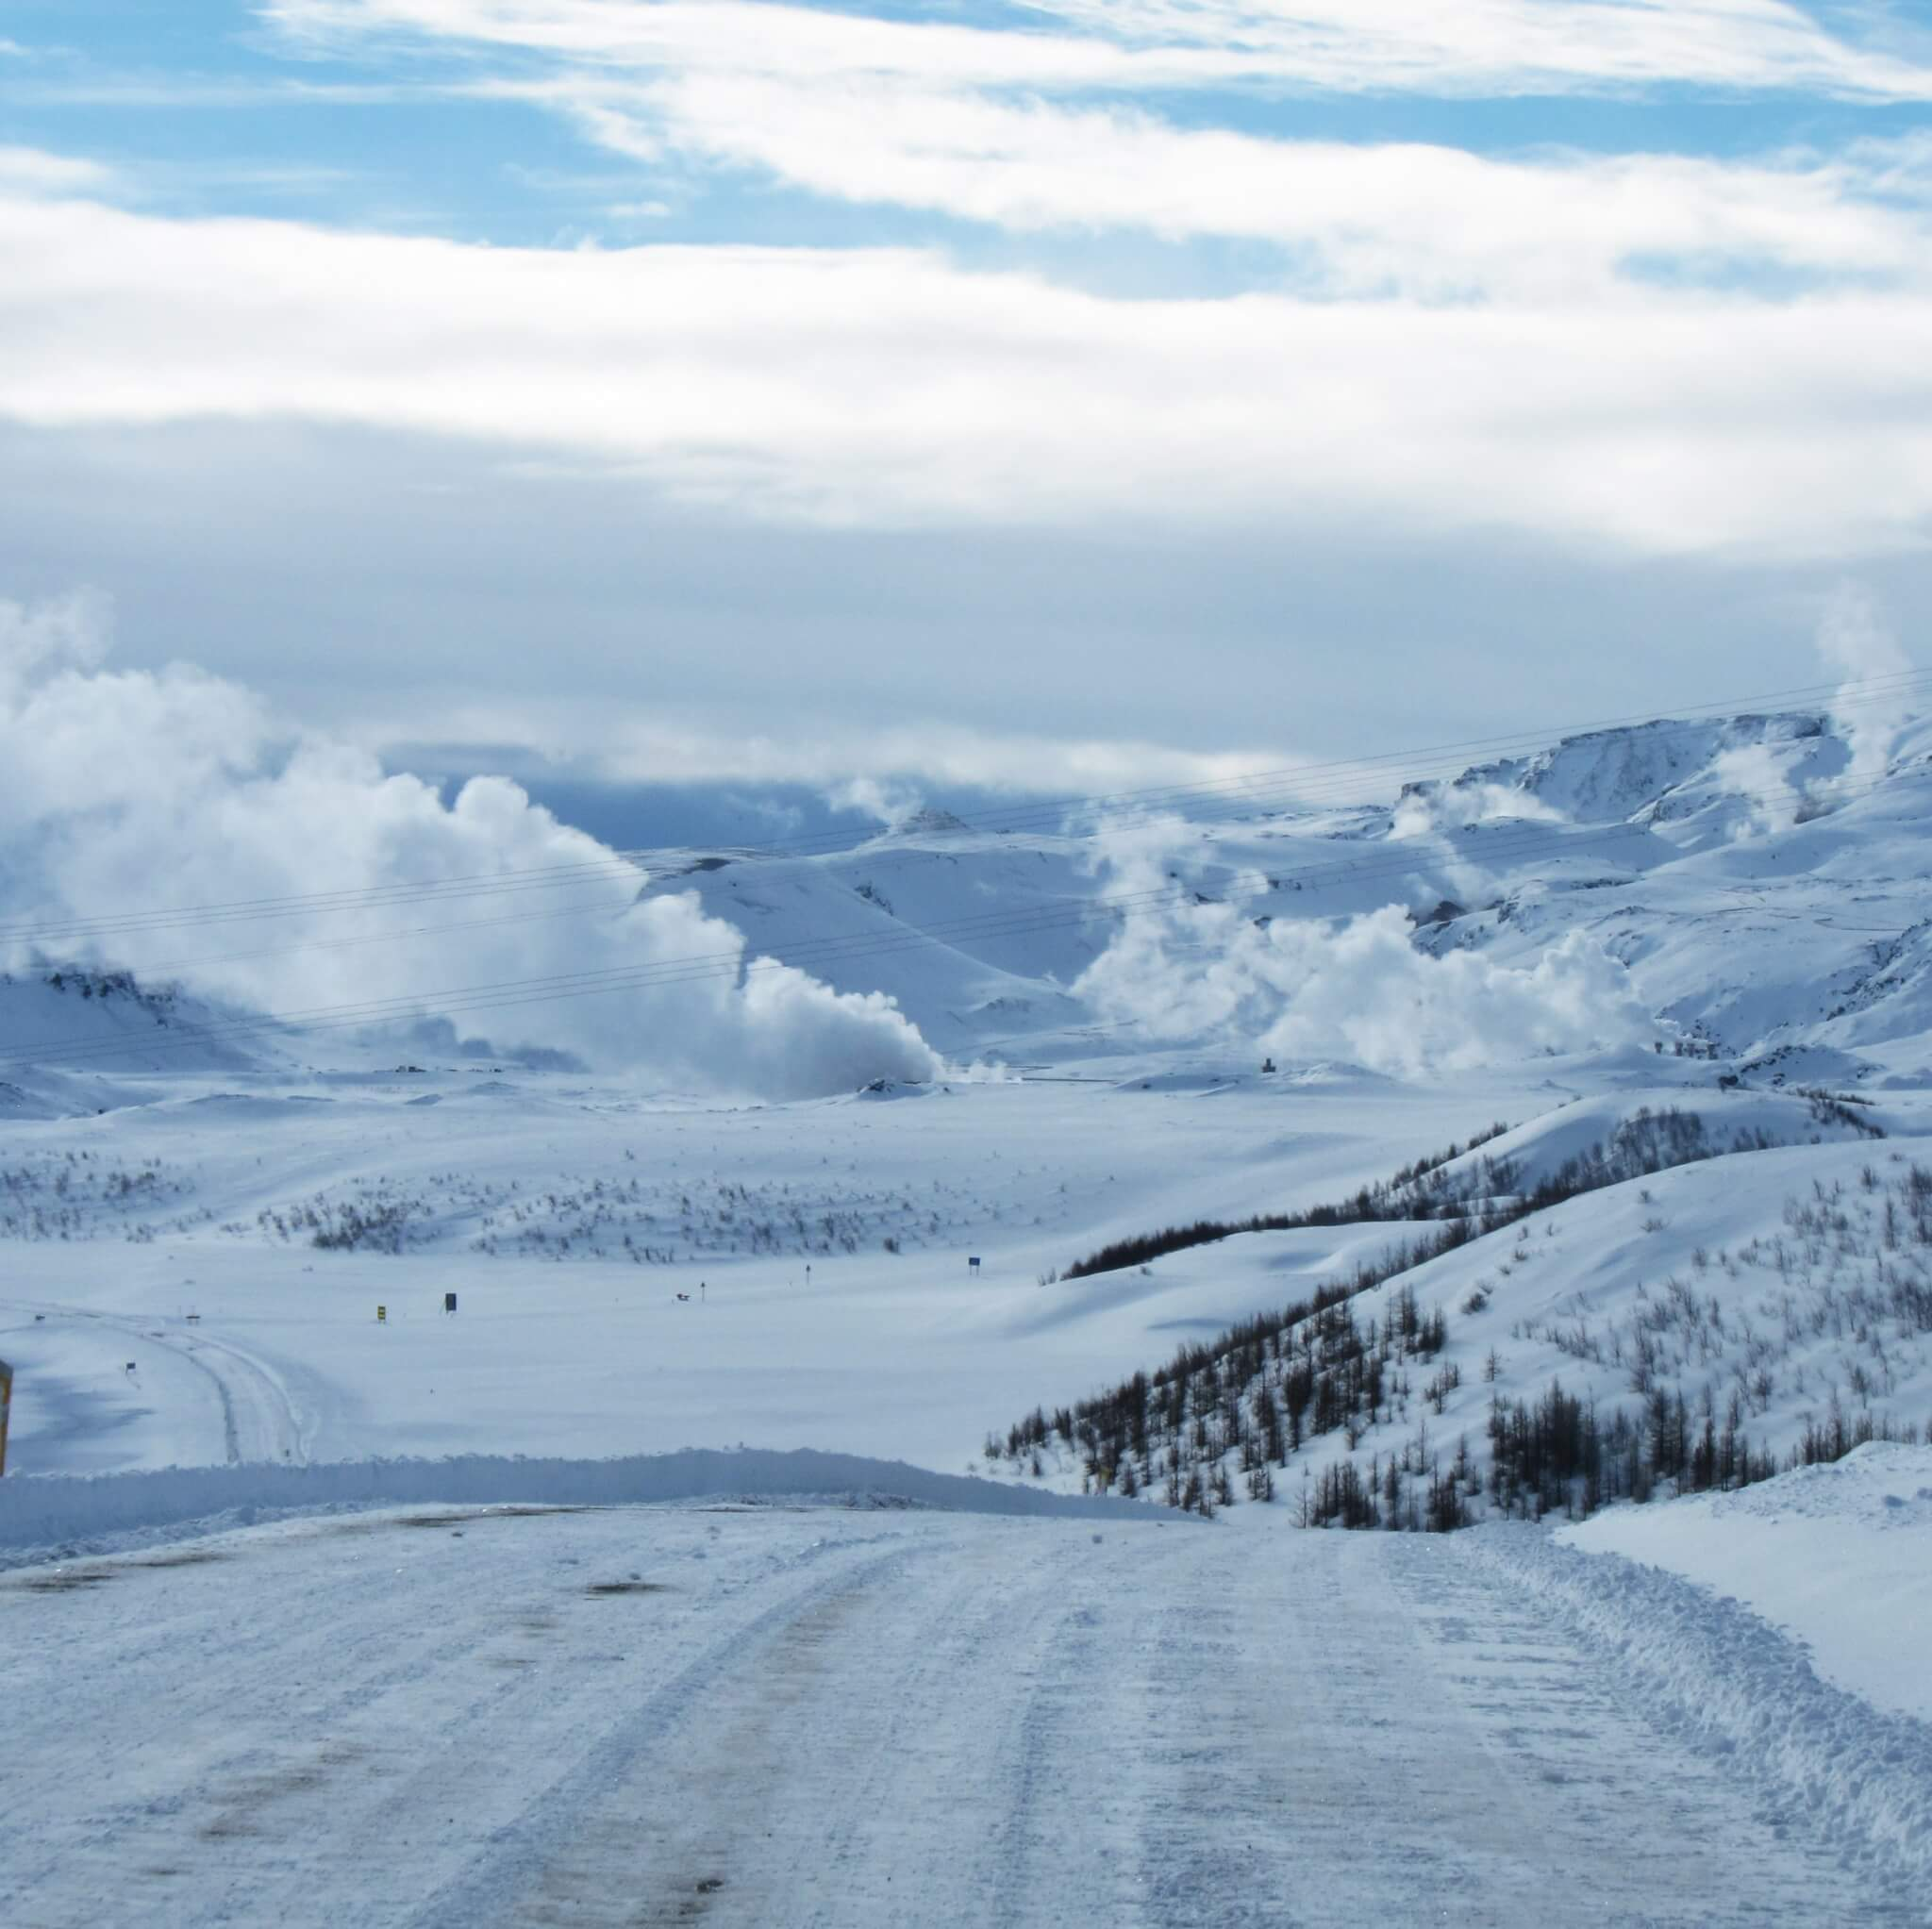 white all around on the road in the interior of Iceland.